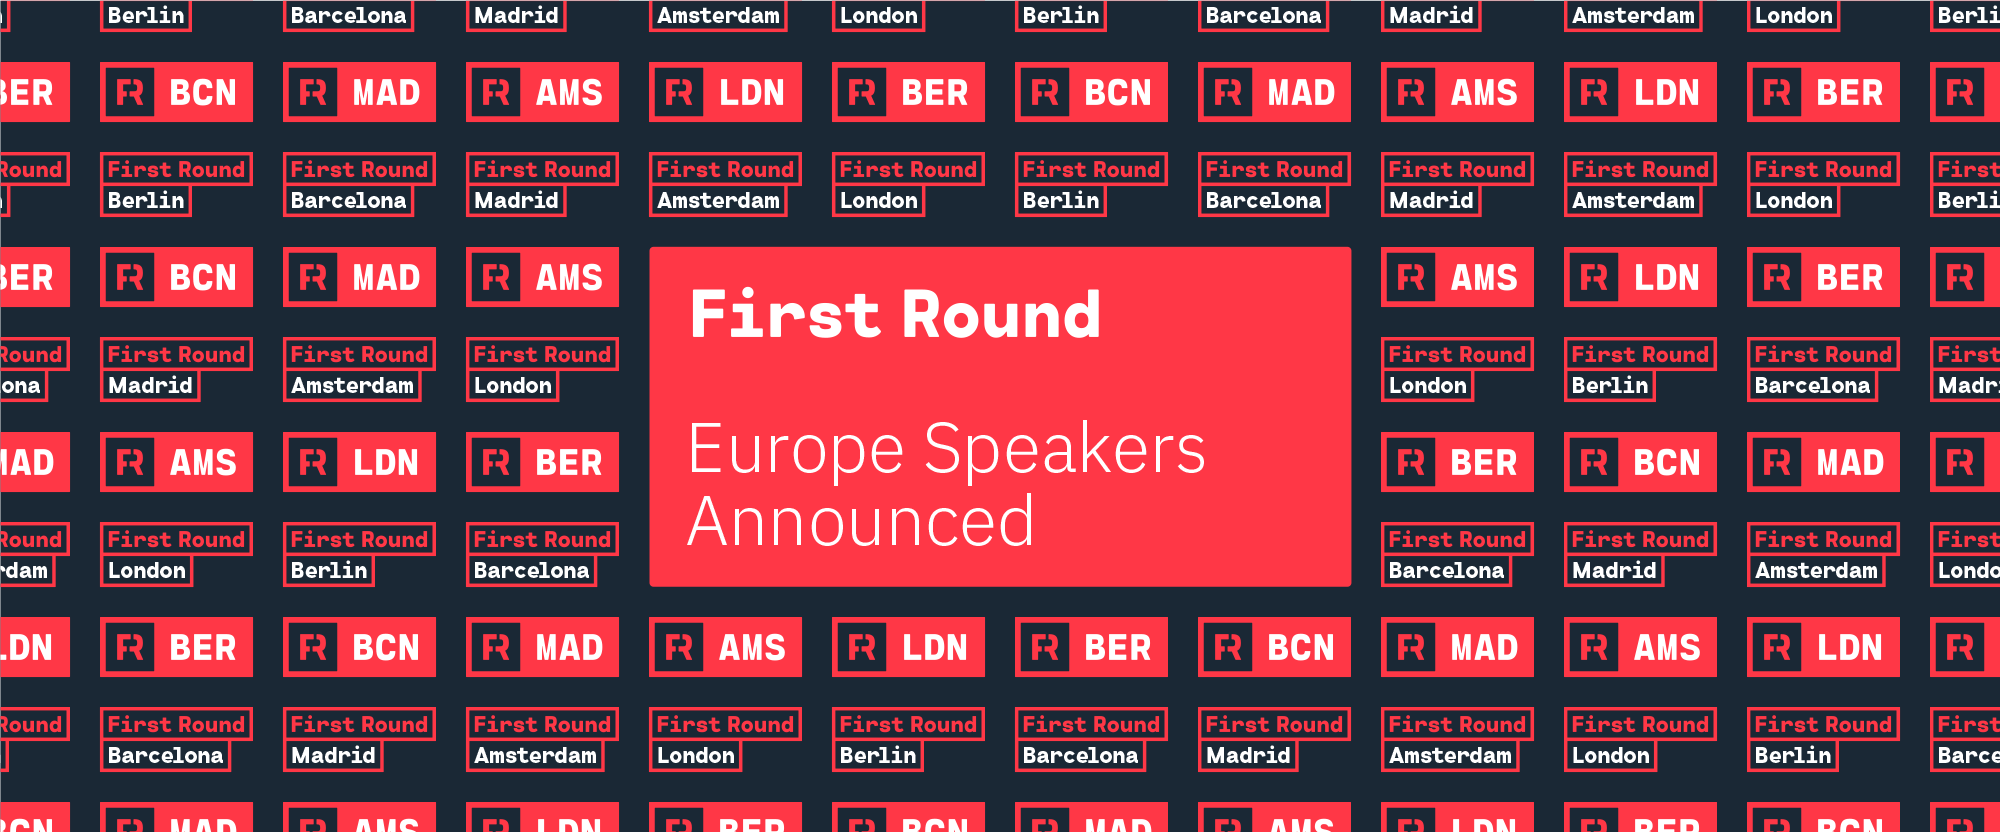 First Round 2020: Europe Speakers Announced